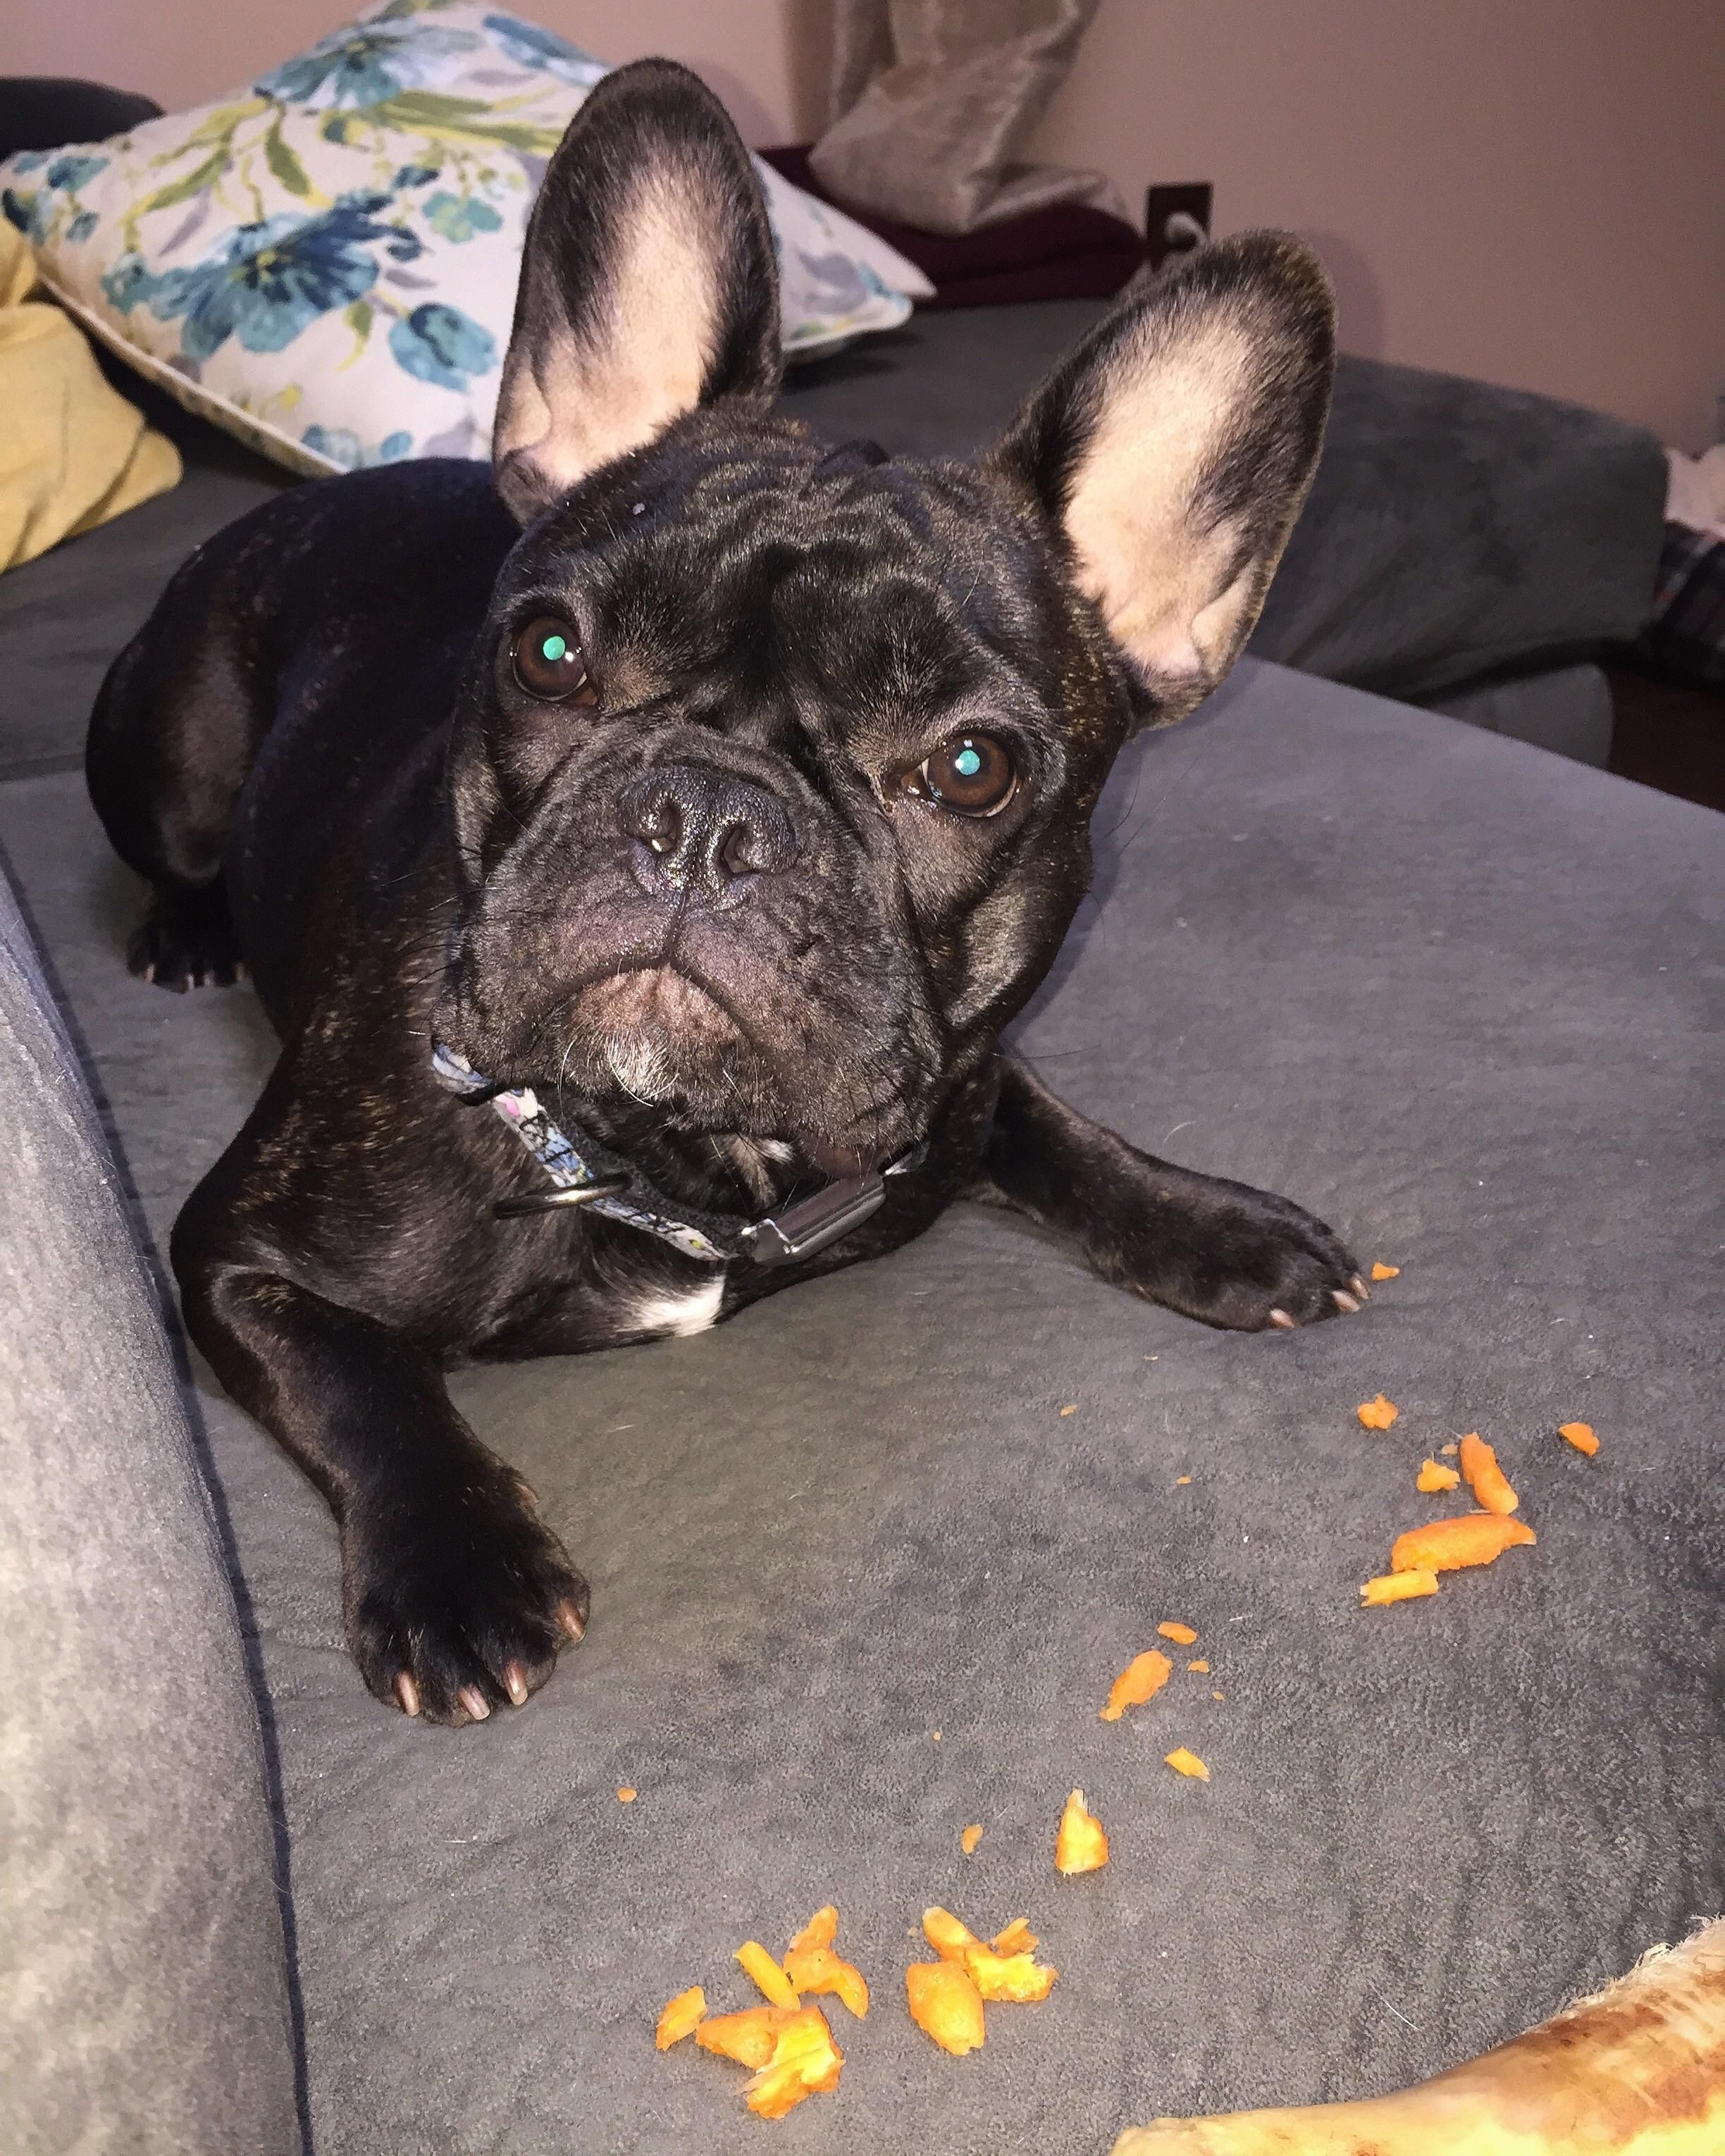 So Carrots Was A Fail Of The Epic Variety Chewed Up And Left As